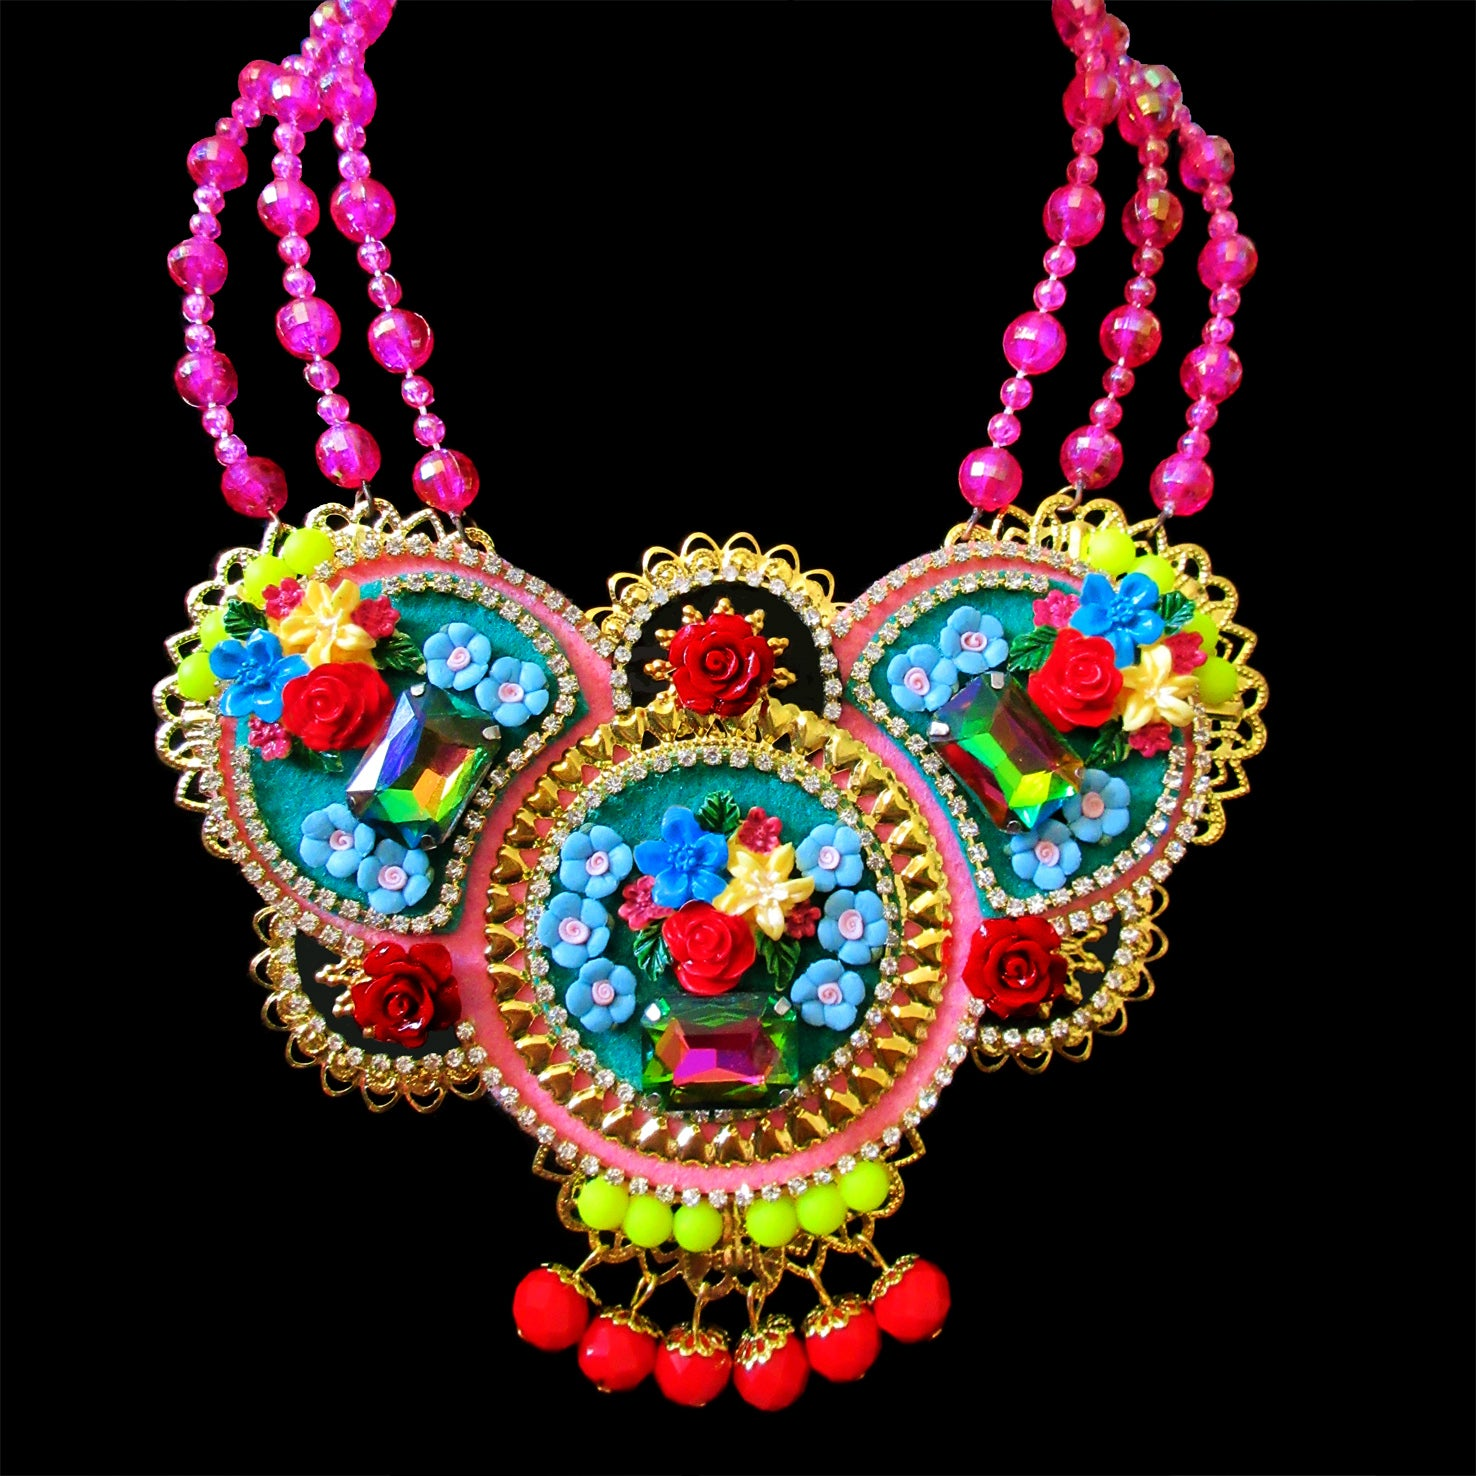 Mouchkine Jewelry handmade couture statement floral Necklace